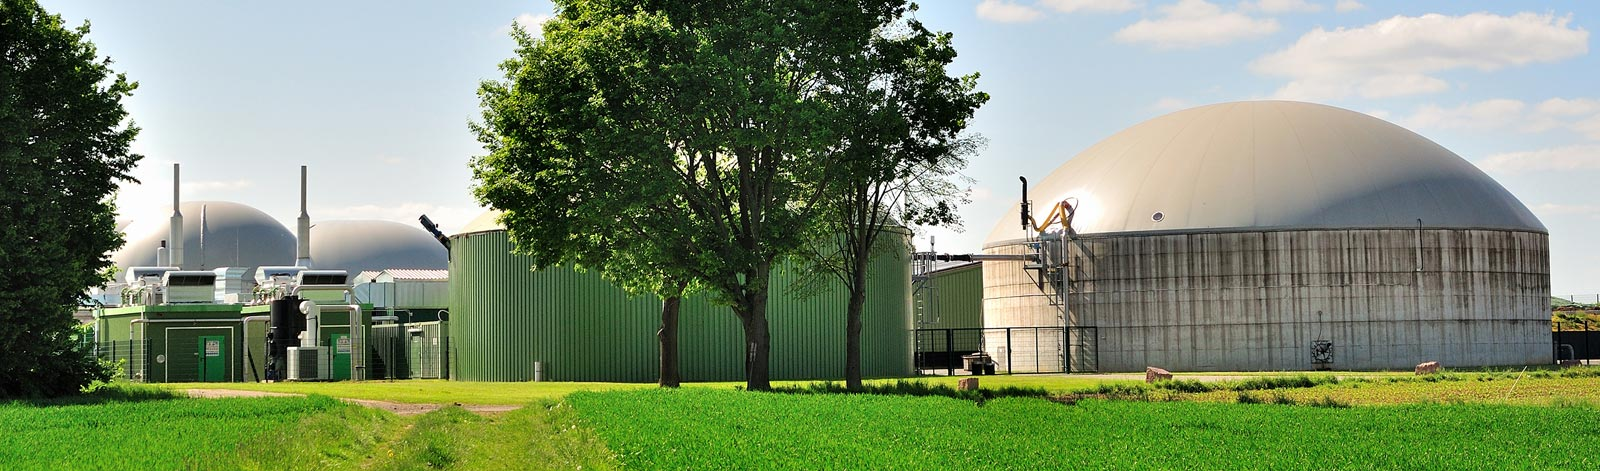 Anaerobic Digestion Foodstock